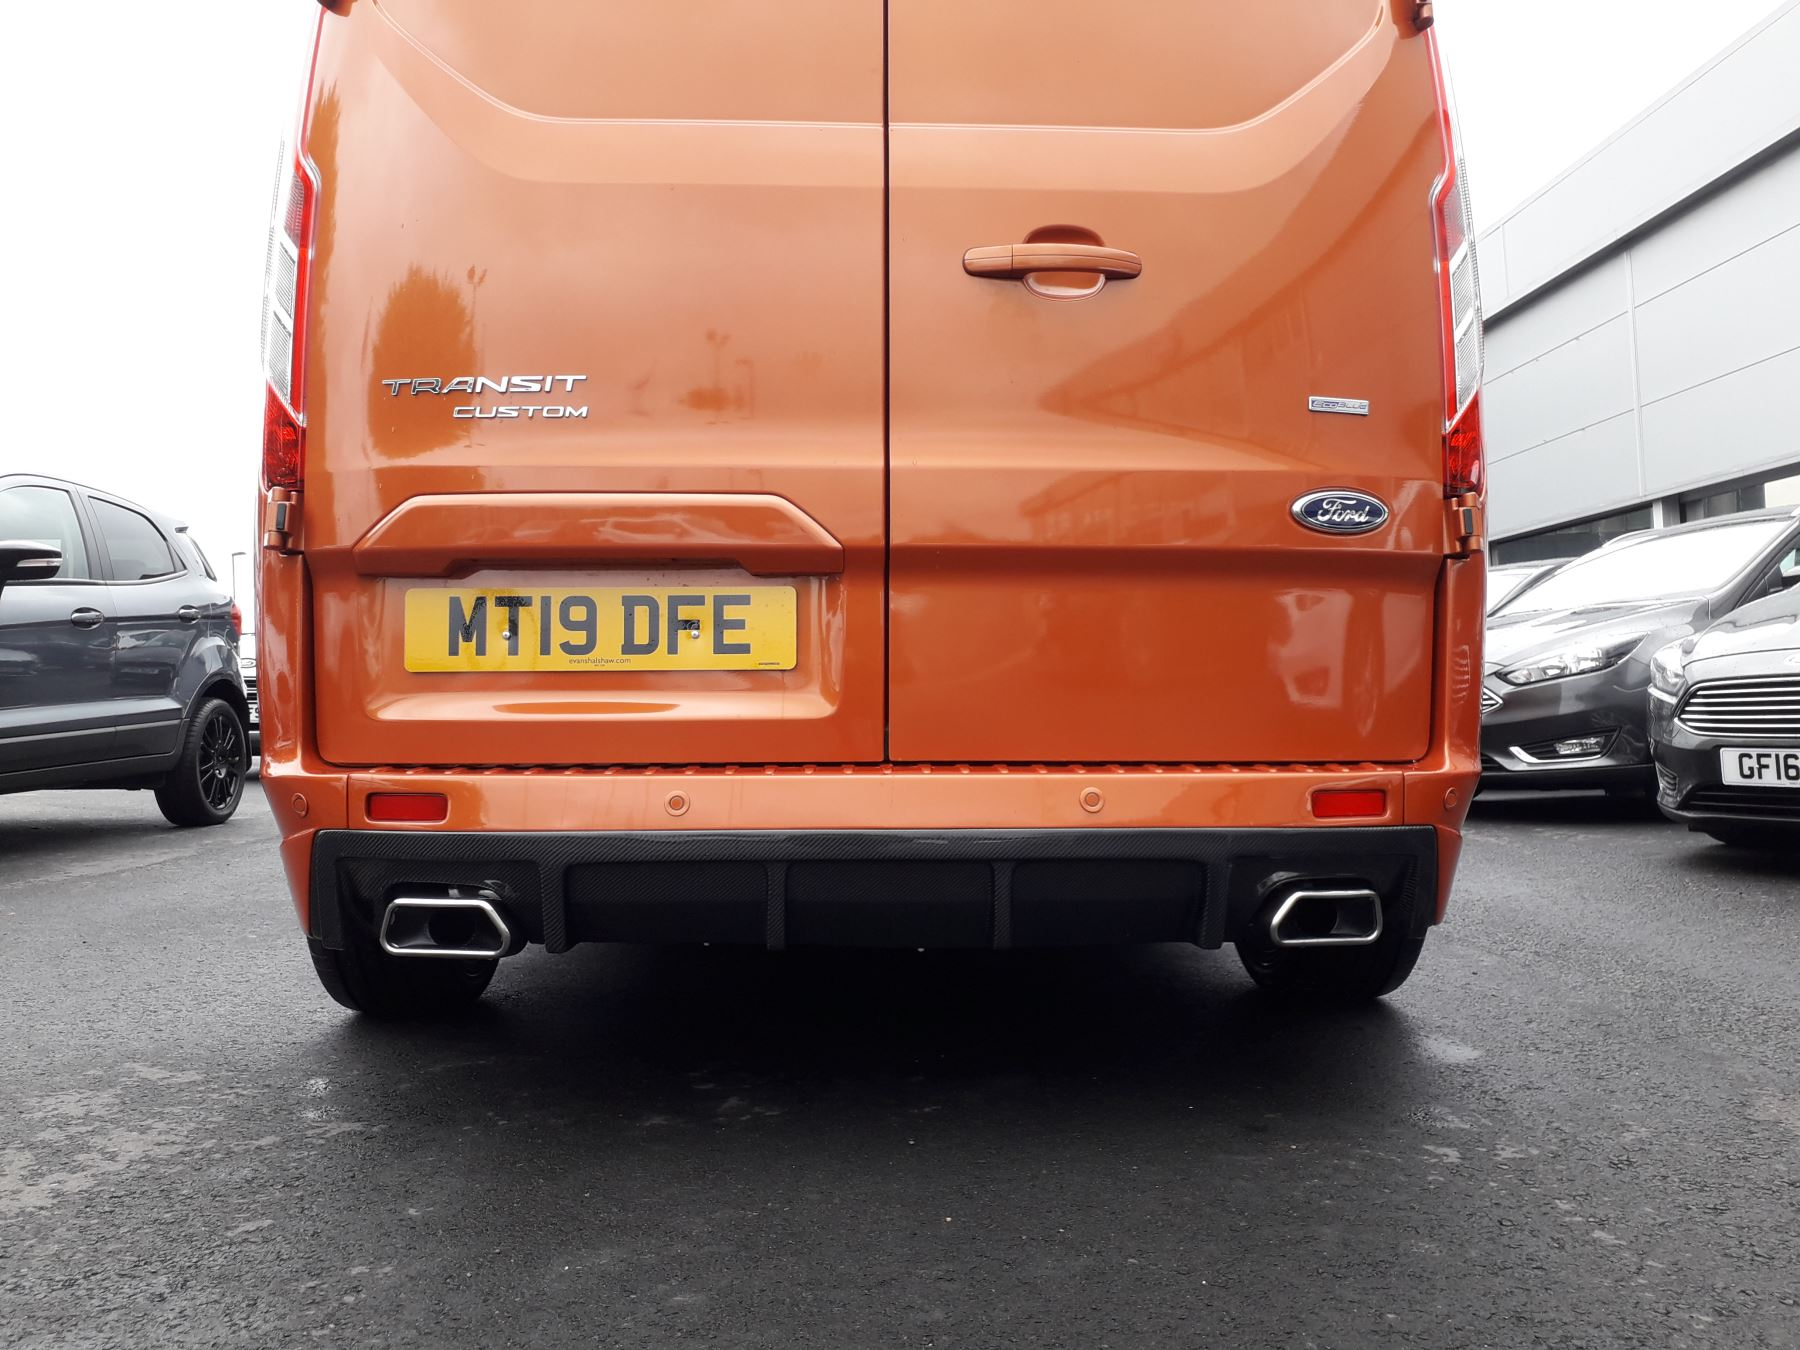 Ford Transit Custom 280 L1 Motion R 130PS Euro 6 image 21